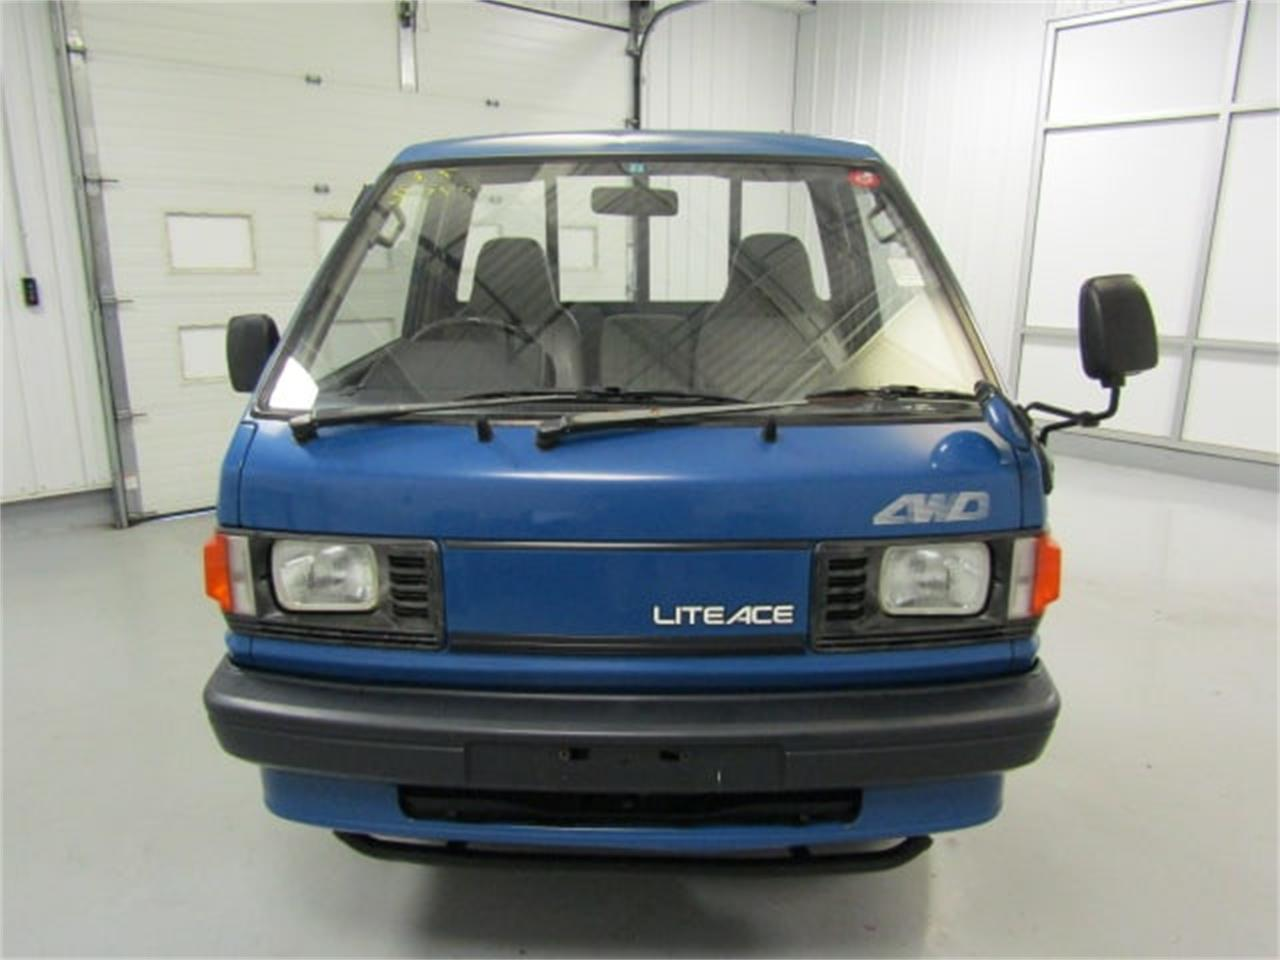 Large Picture of 1990 LiteAce located in Virginia - $7,979.00 - JM5H